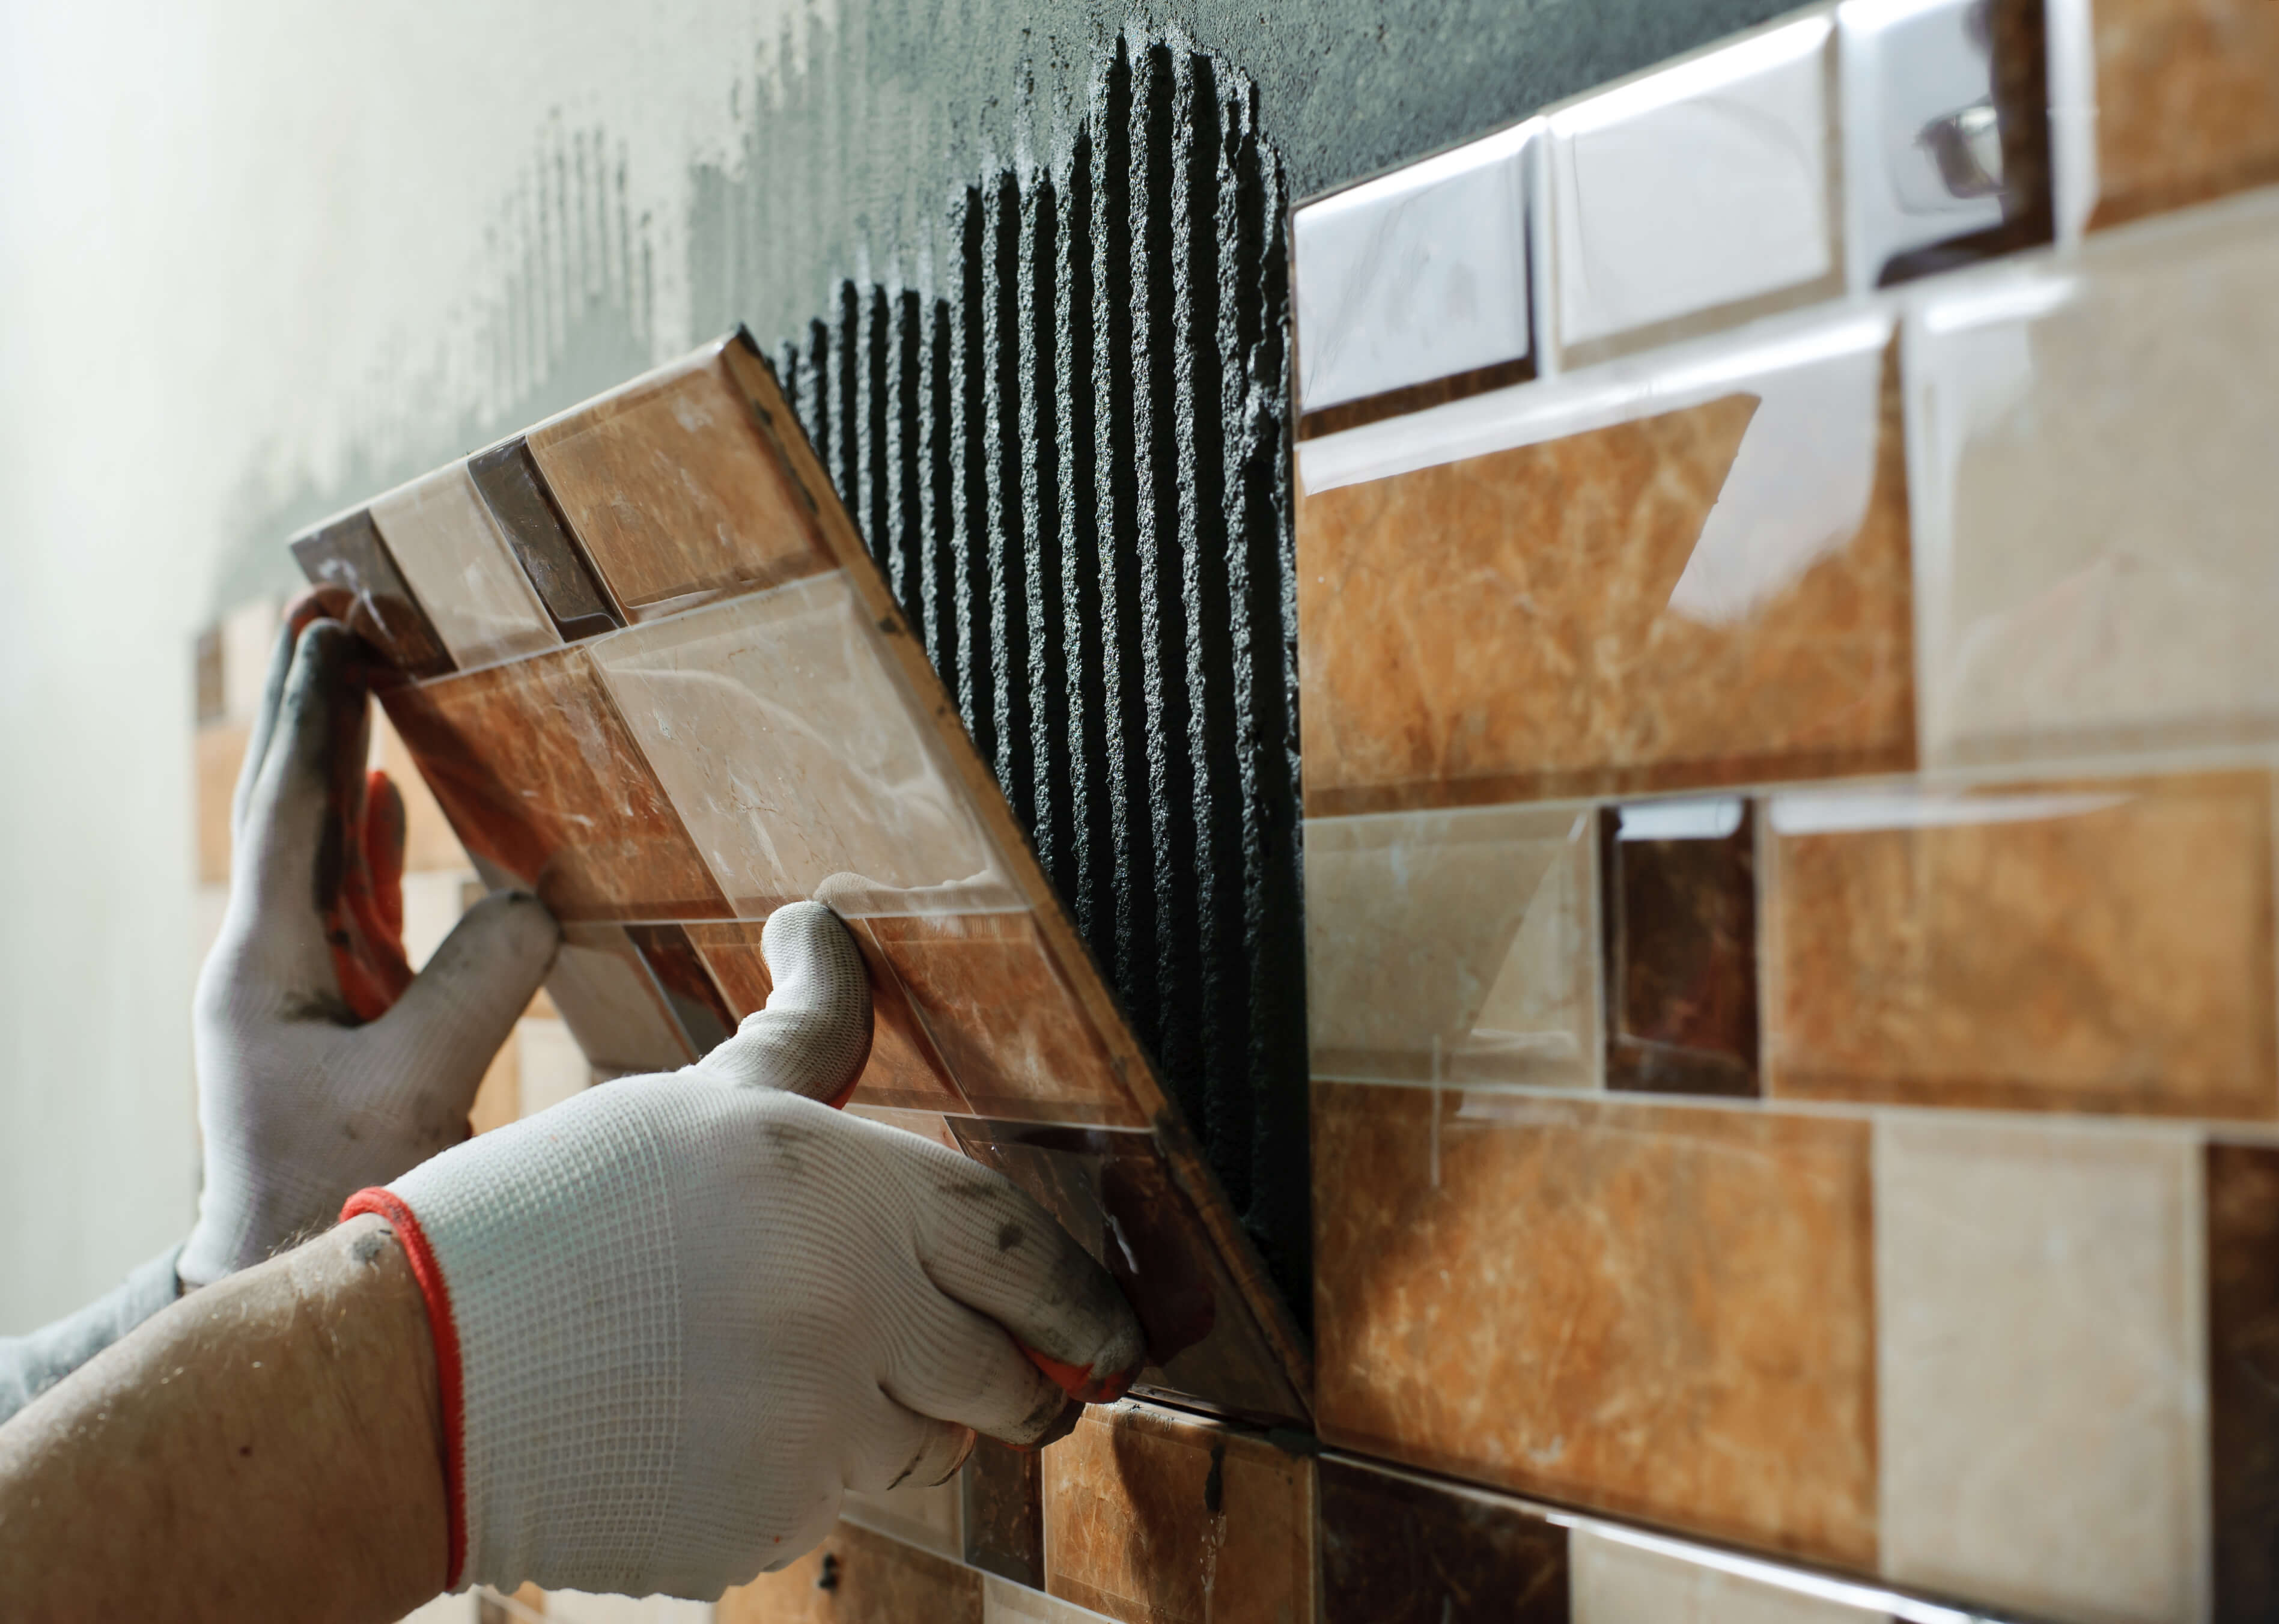 materials for tiling